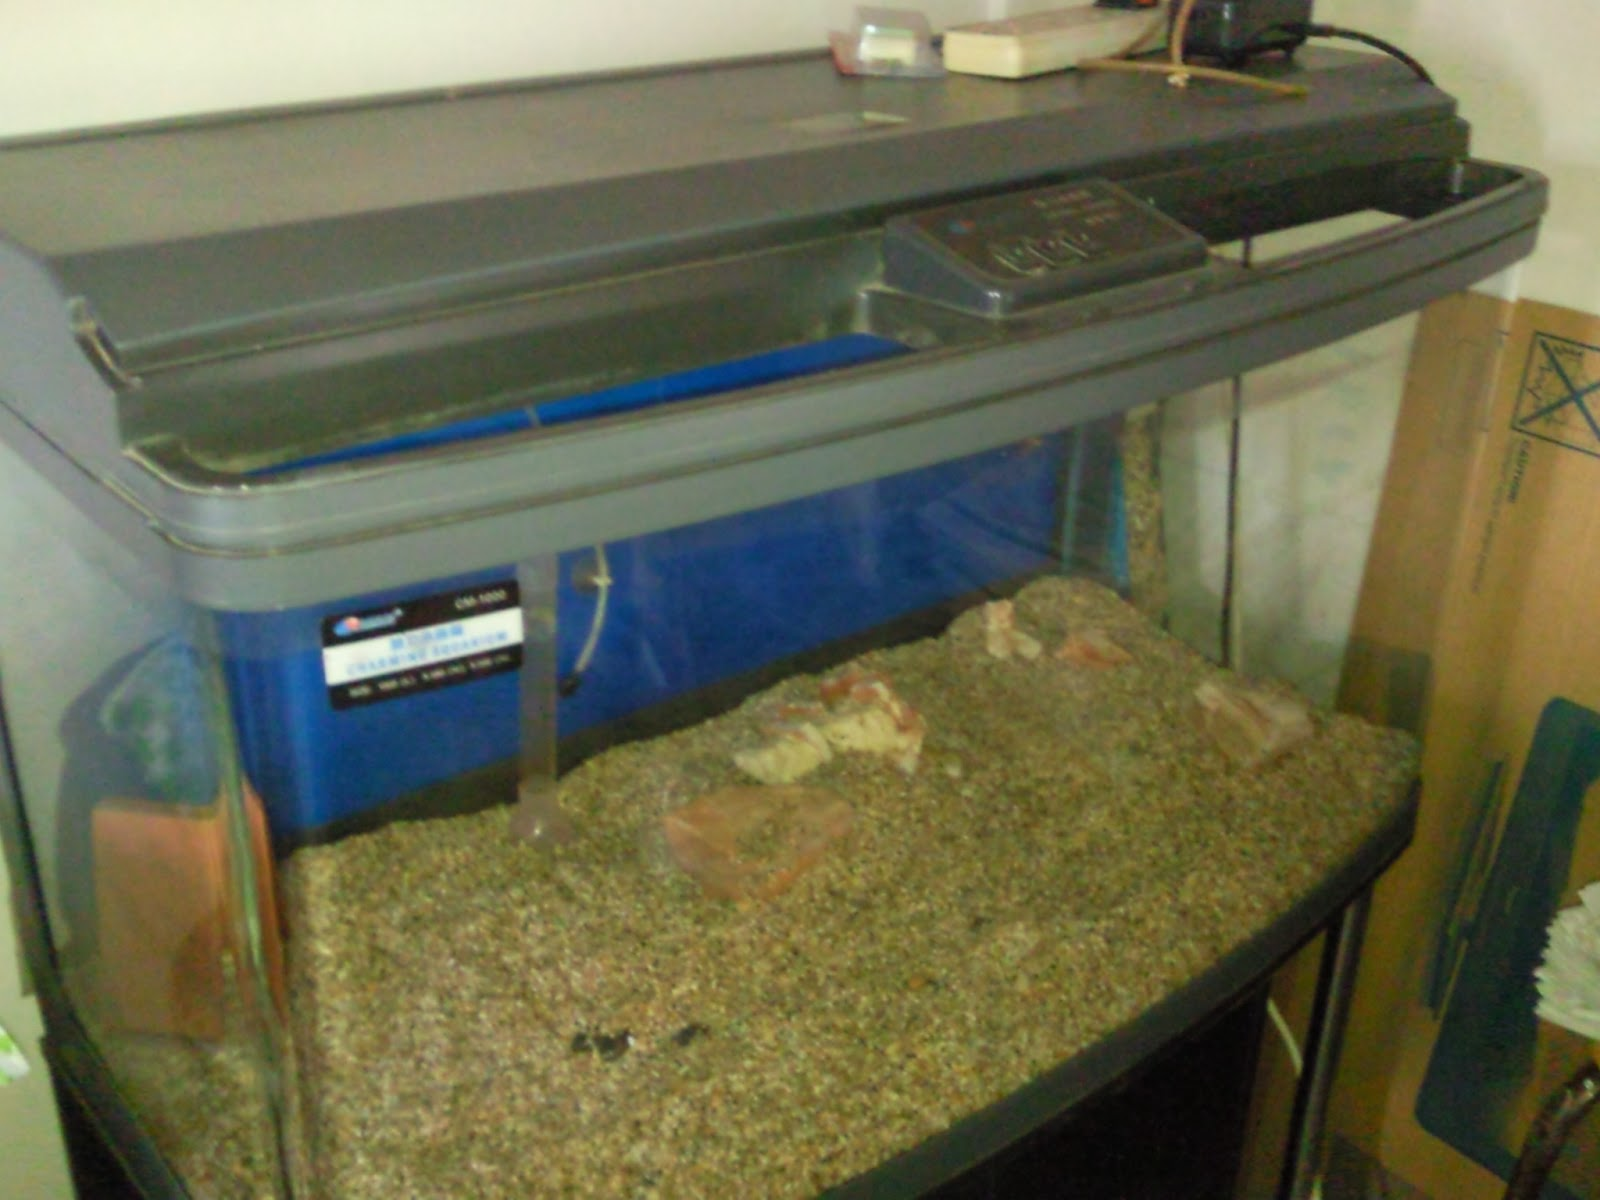 fish tanks for sale 26 jan to 1 feb